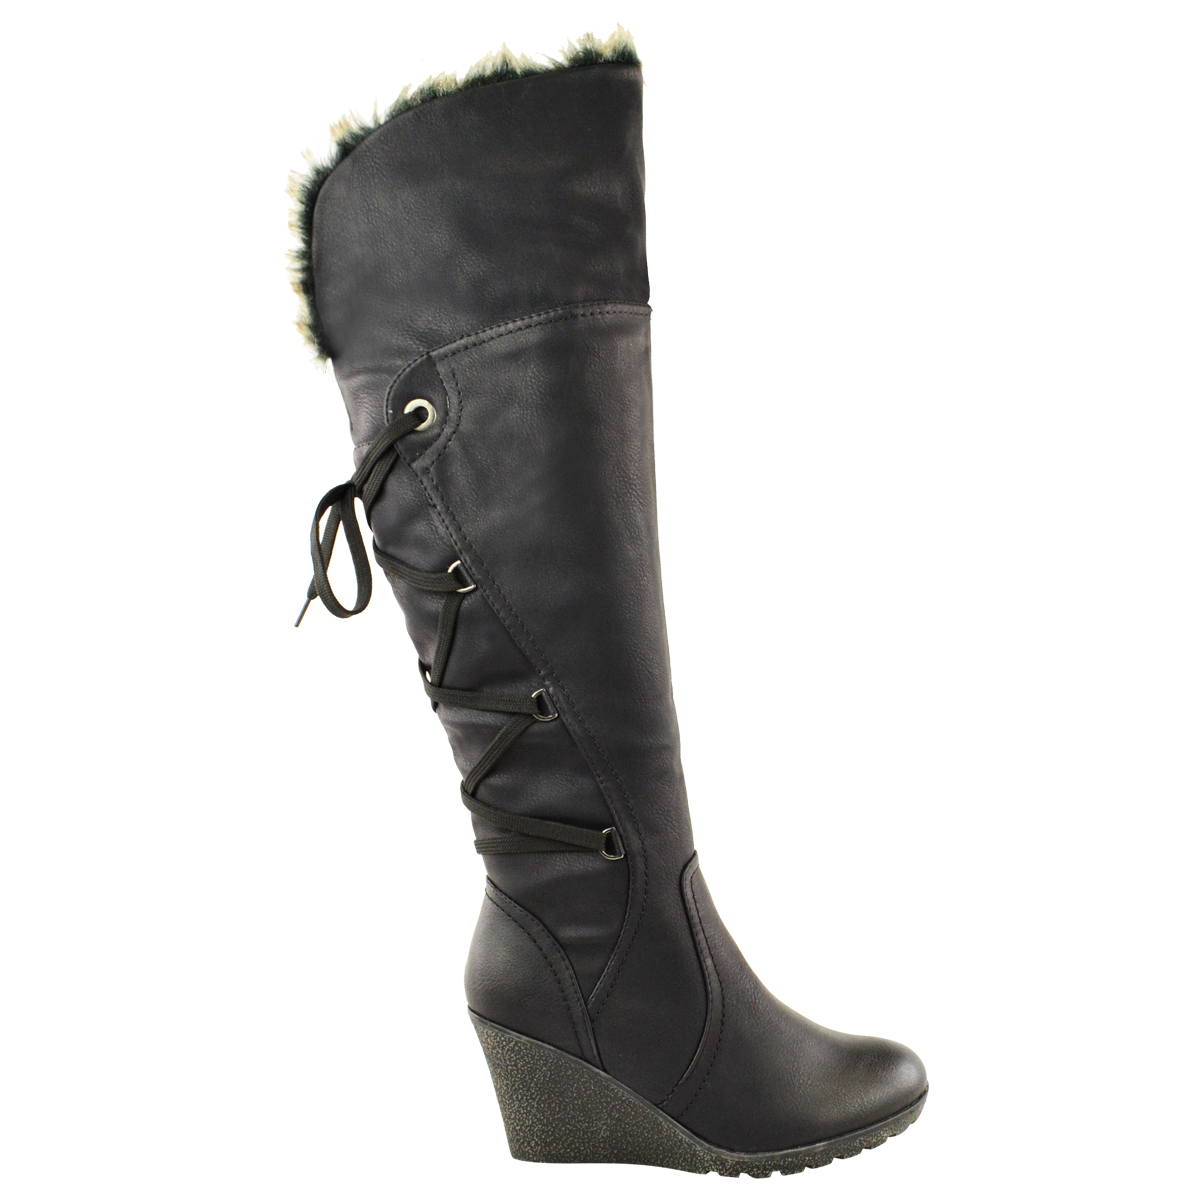 WOMENS LADIES MID WEDGE HIGH HEEL FUR LINED WARM WINTER ...